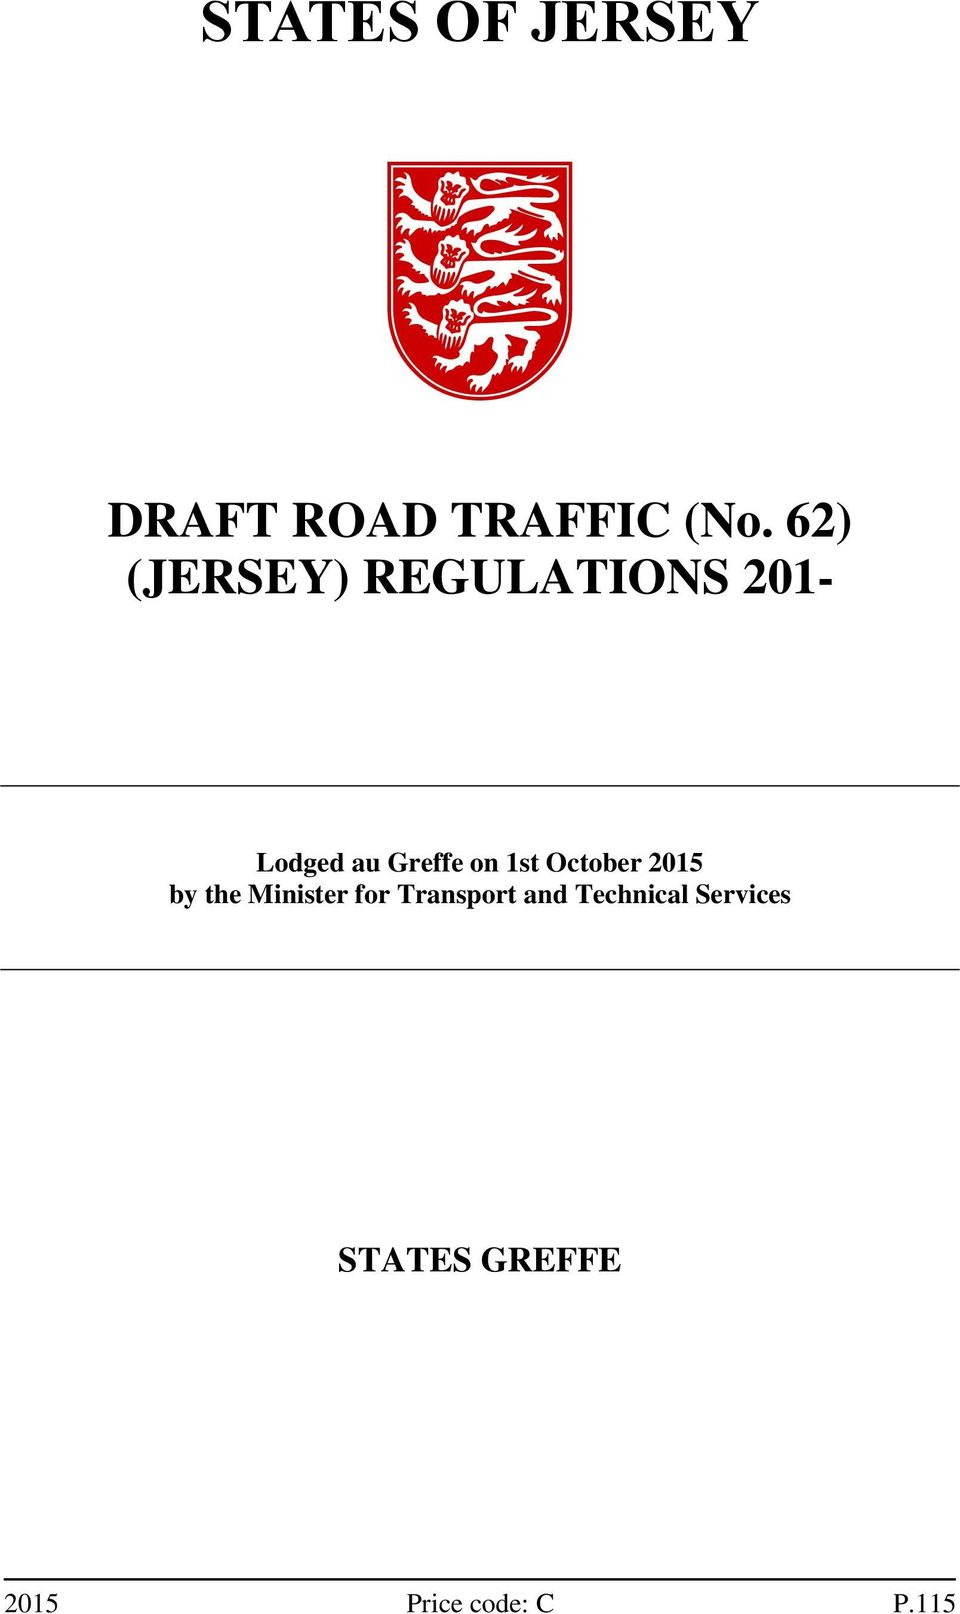 1st October 2015 by the Minister for Transport and